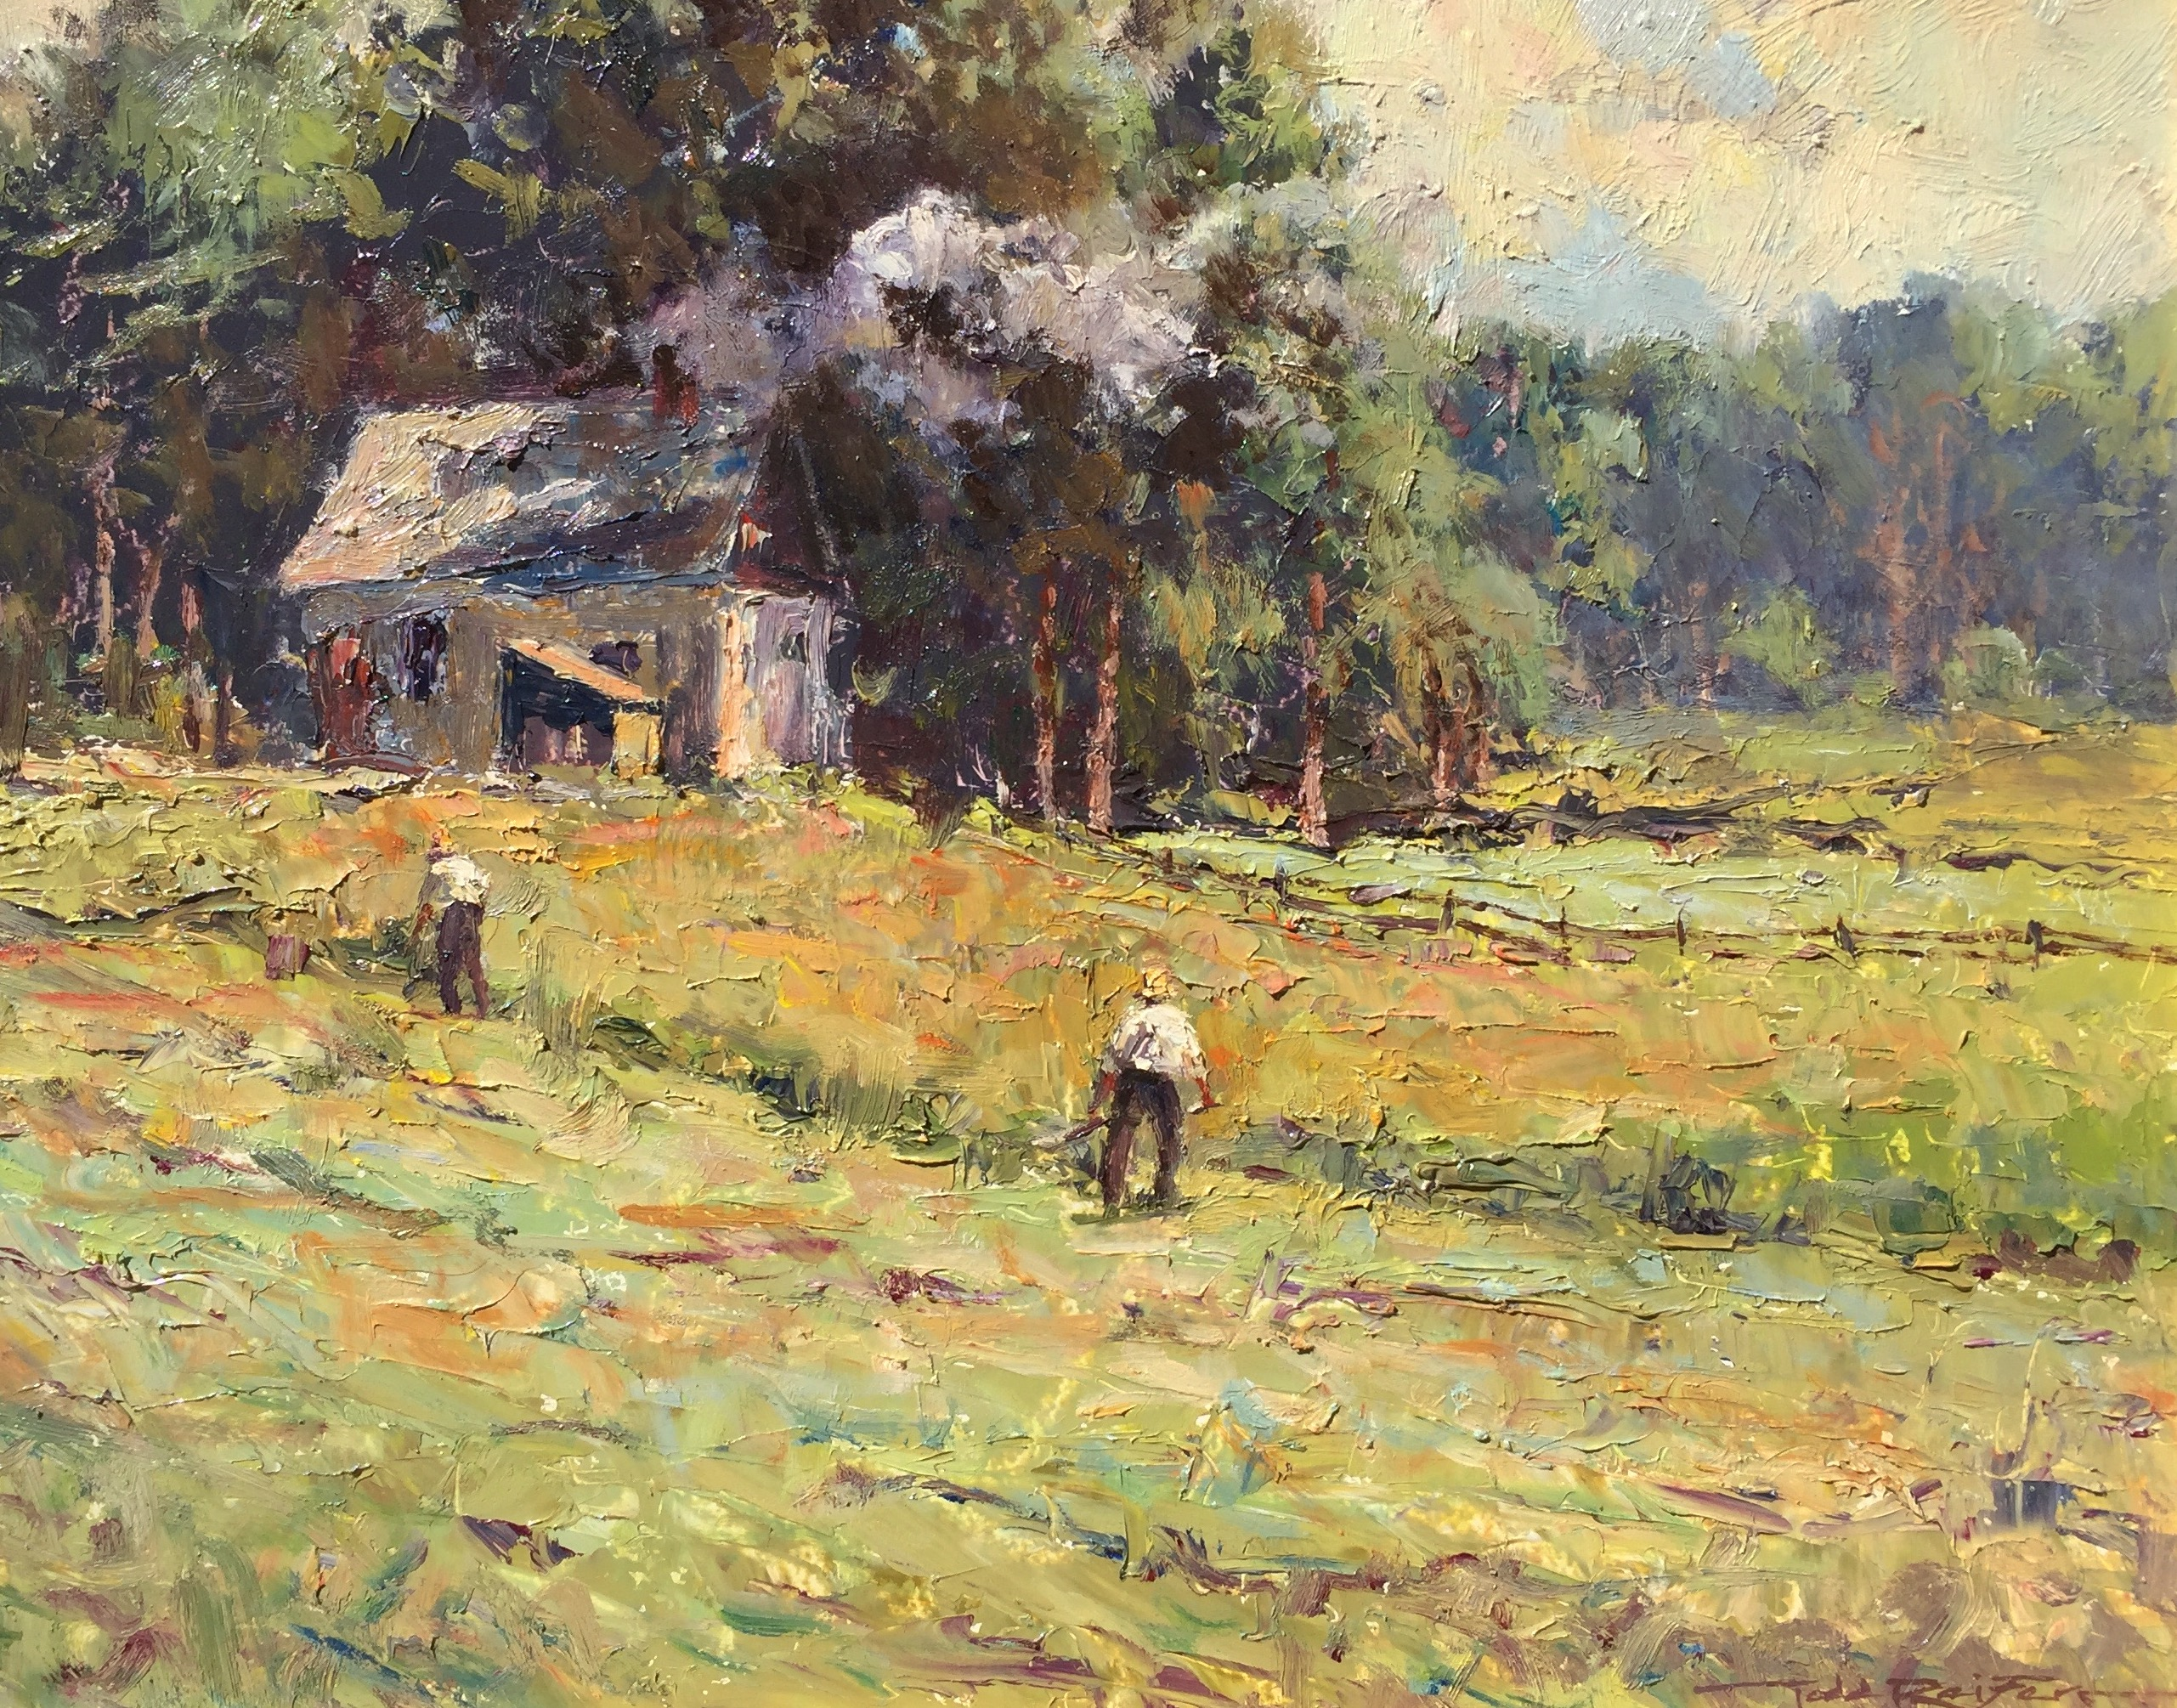 reifers-workingthefields-cropped